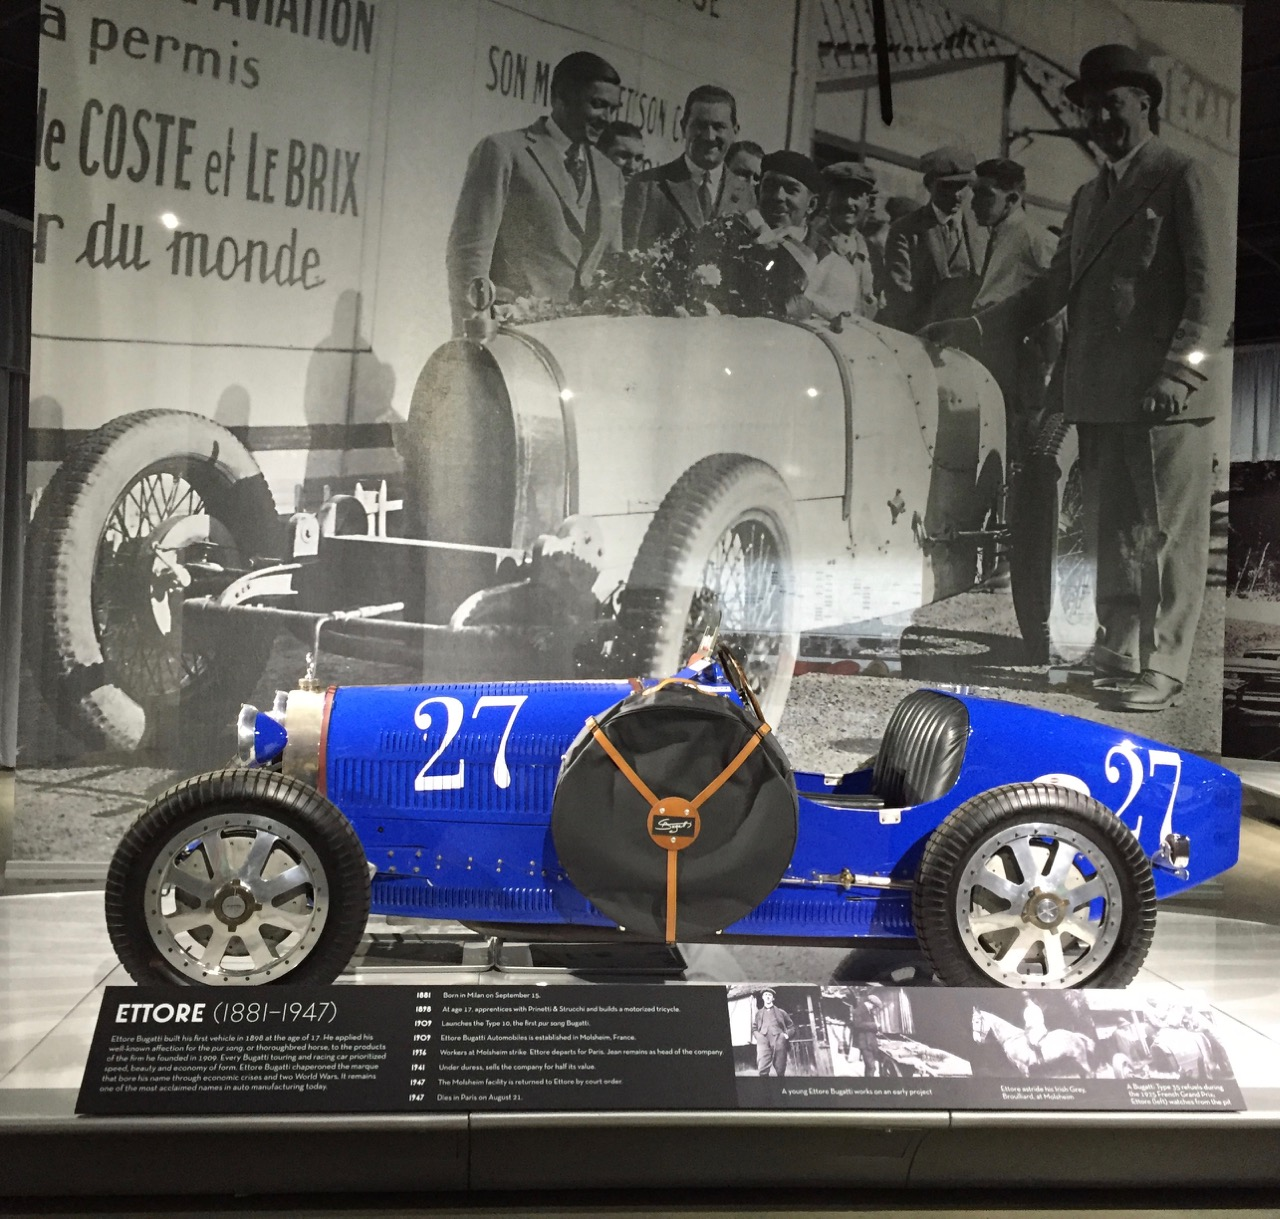 Ettore's famed T35 grand prix racer